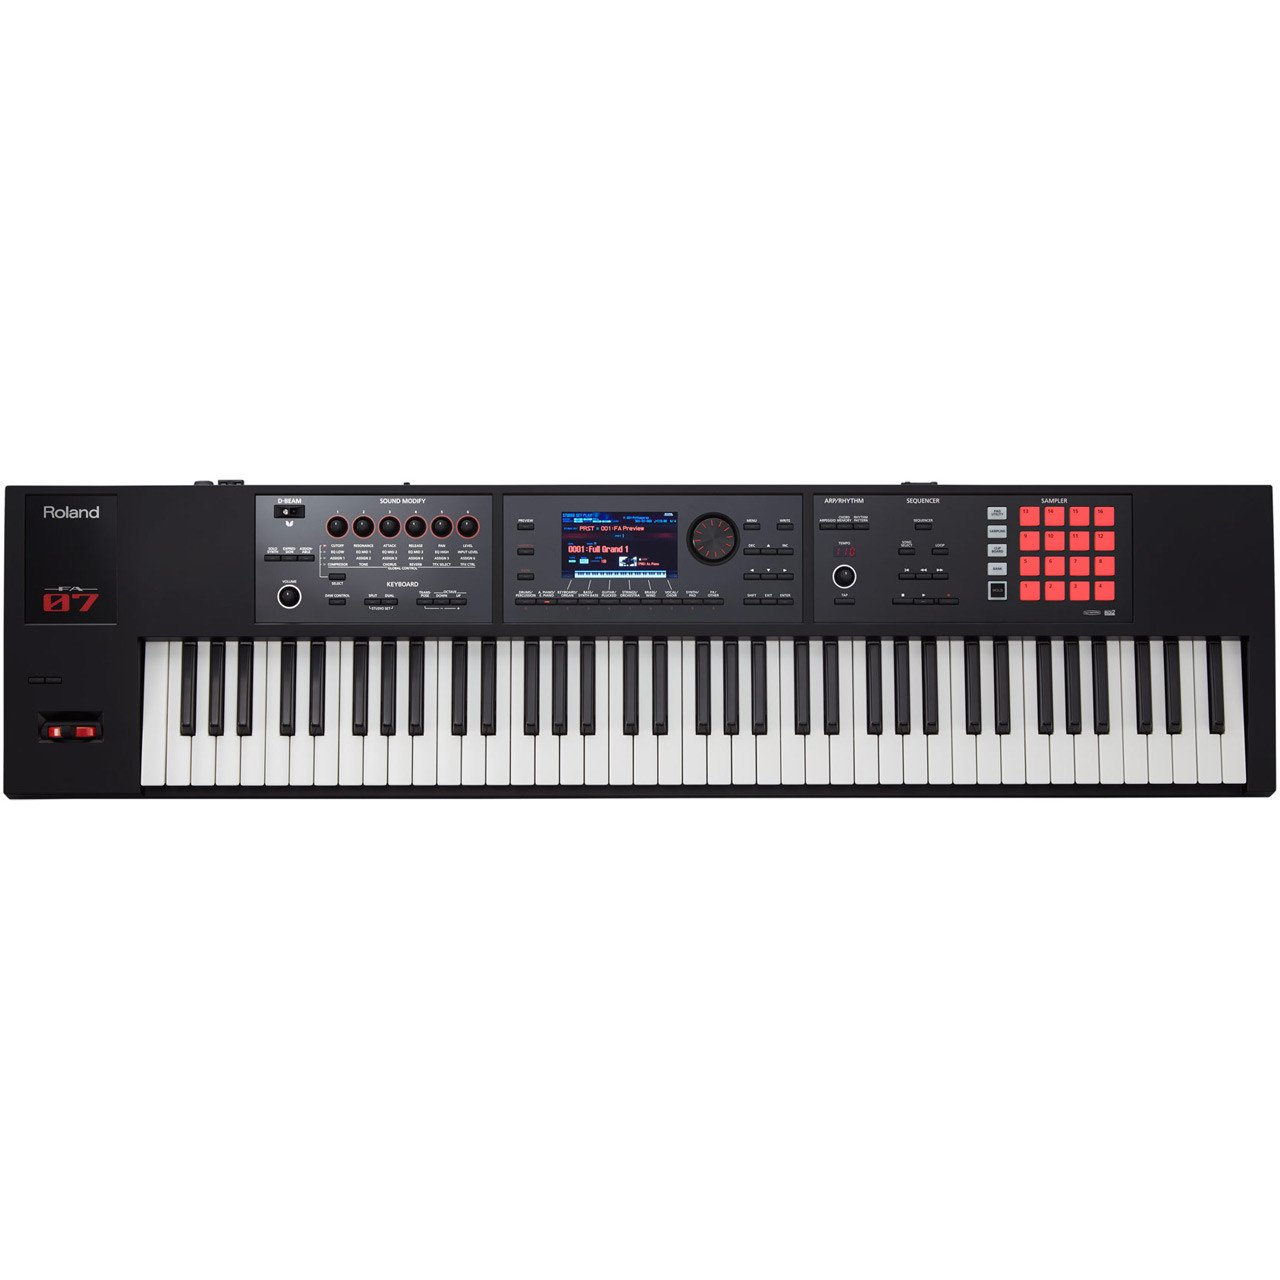 Roland FA-07 Music Workstation Keyboard